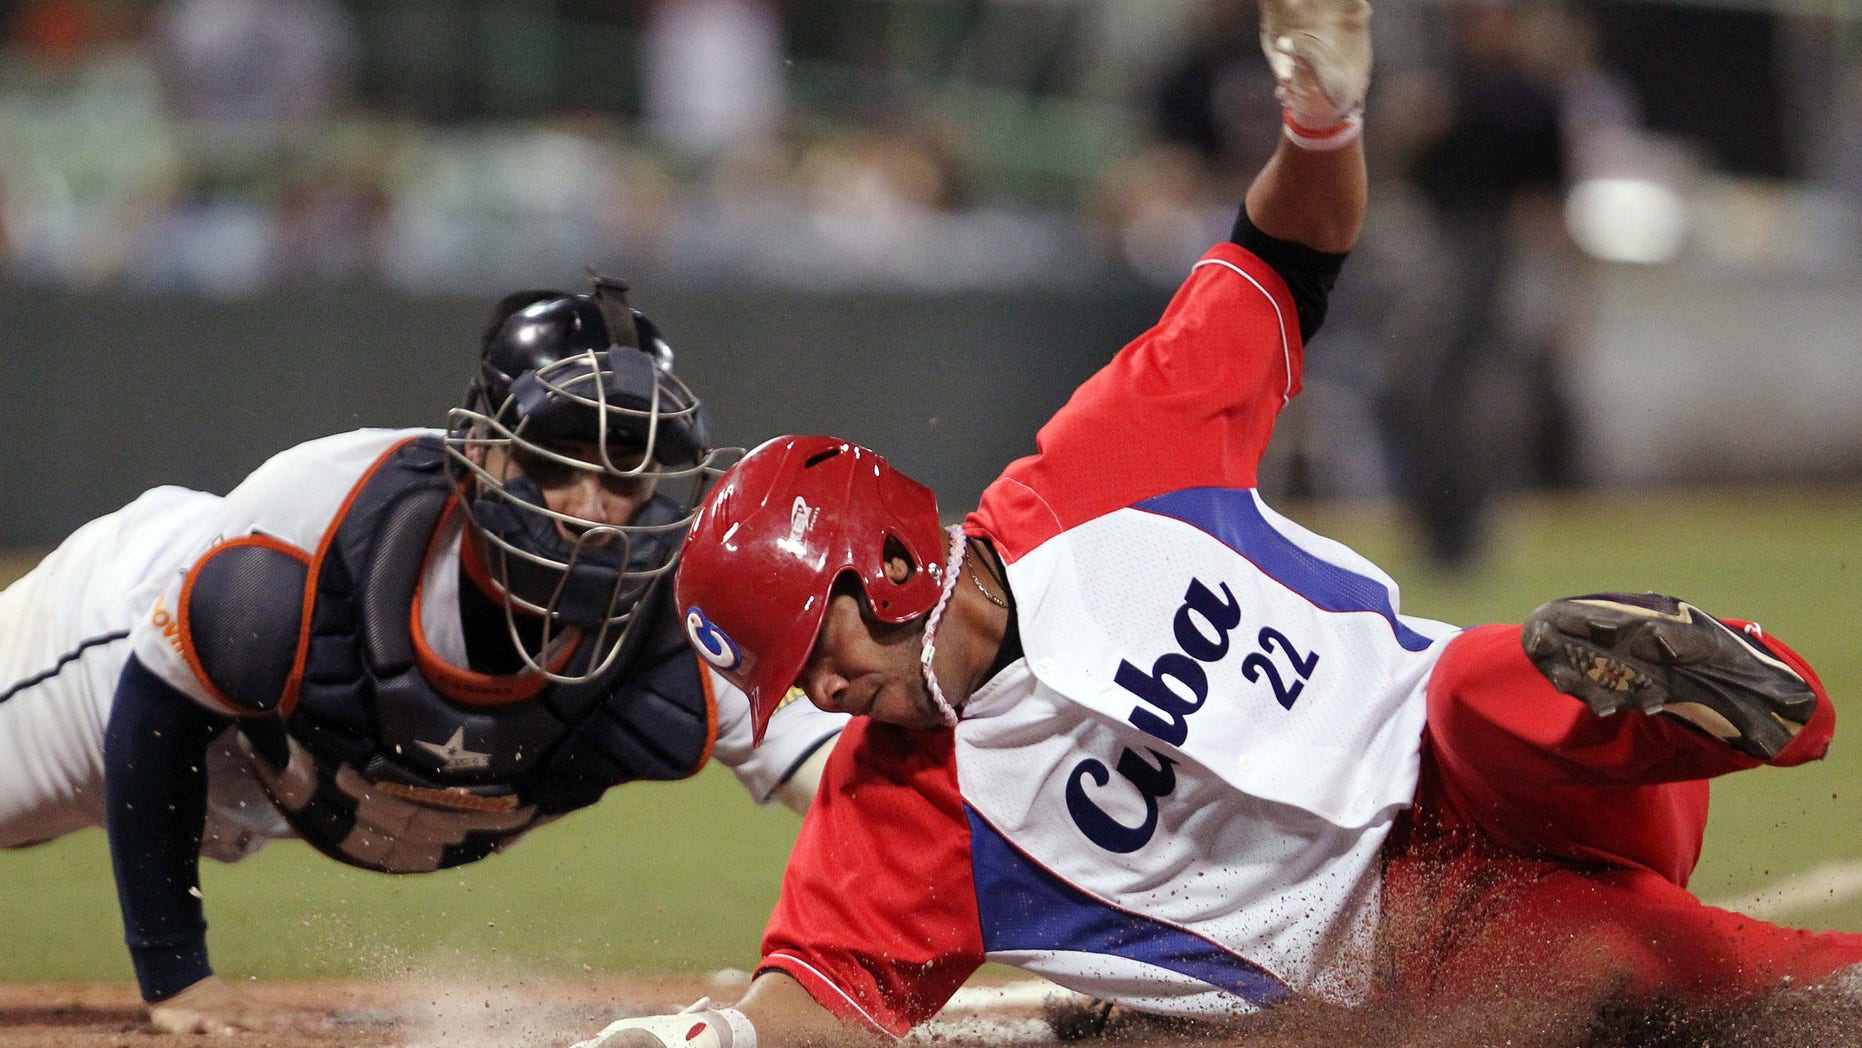 Cubaâs Yadiel Hernandez, right, slides safe at the home plate against Venezuela's catcher Jose Gil during a Caribbean Series baseball semifinal game in San Juan, Puerto Rico, Saturday, Feb. 7, 2015. (AP Photo/Ricardo Arduengo)